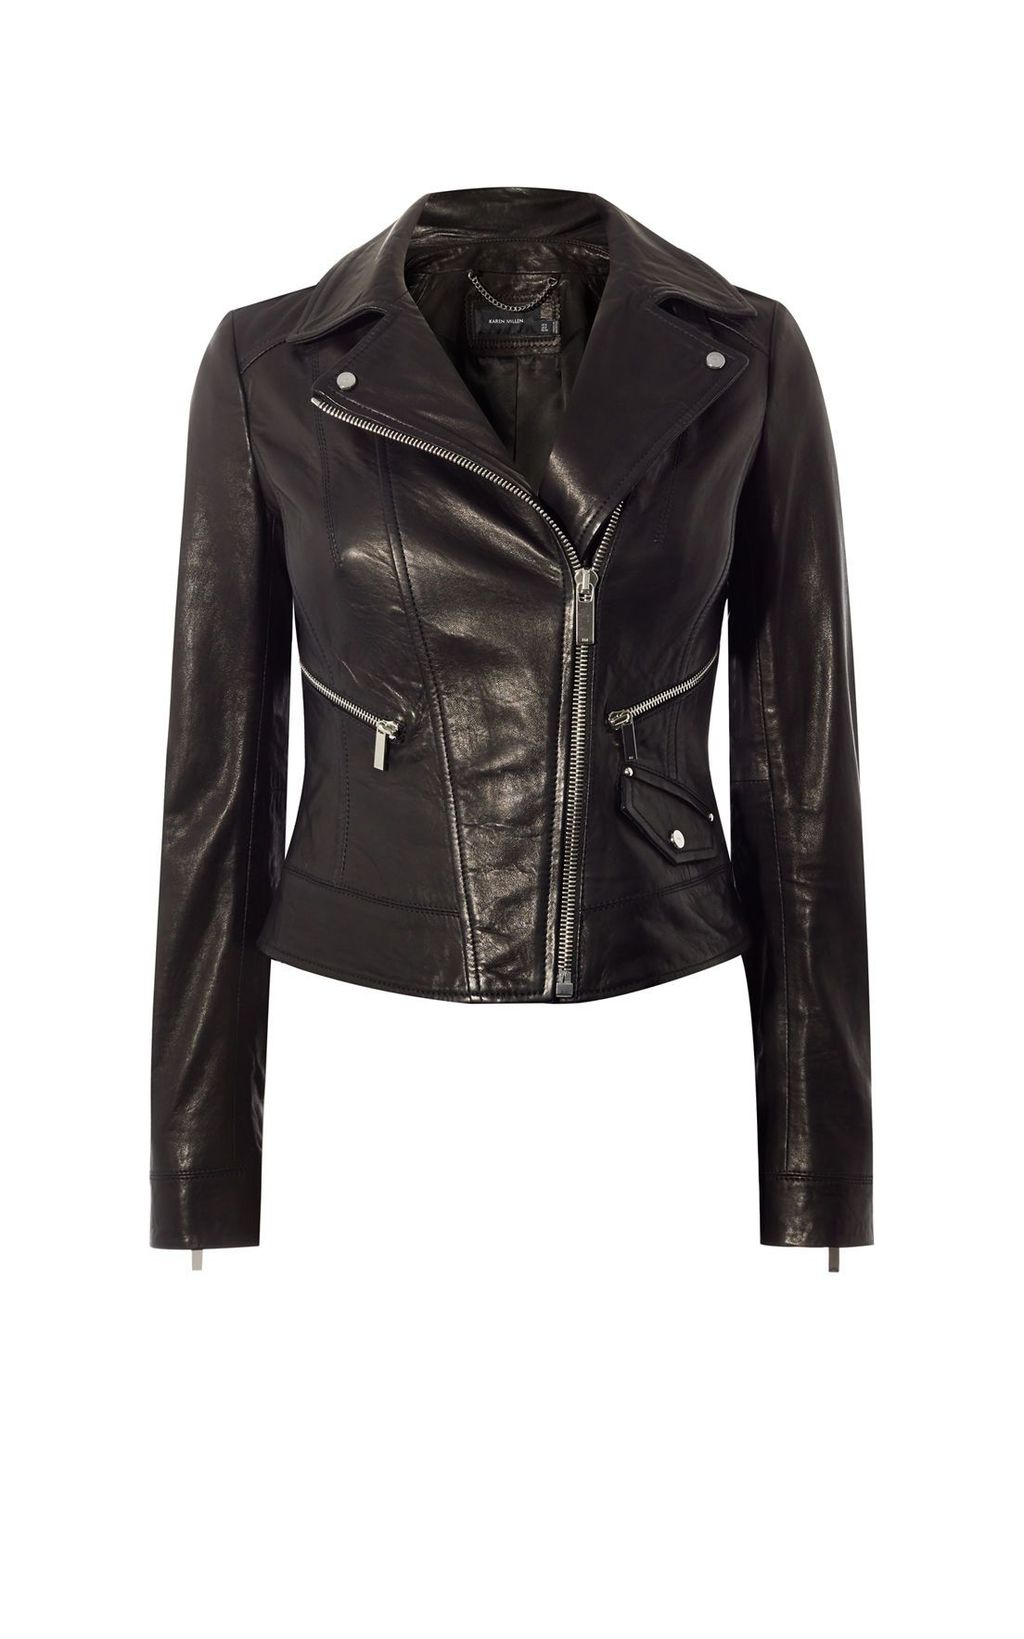 Leather Biker Jacket, Black - pattern: plain; style: biker; collar: asymmetric biker; predominant colour: black; occasions: casual, creative work; length: standard; fit: tailored/fitted; fibres: leather - 100%; sleeve length: long sleeve; sleeve style: standard; texture group: leather; collar break: high/illusion of break when open; pattern type: fabric; season: s/s 2016; wardrobe: basic